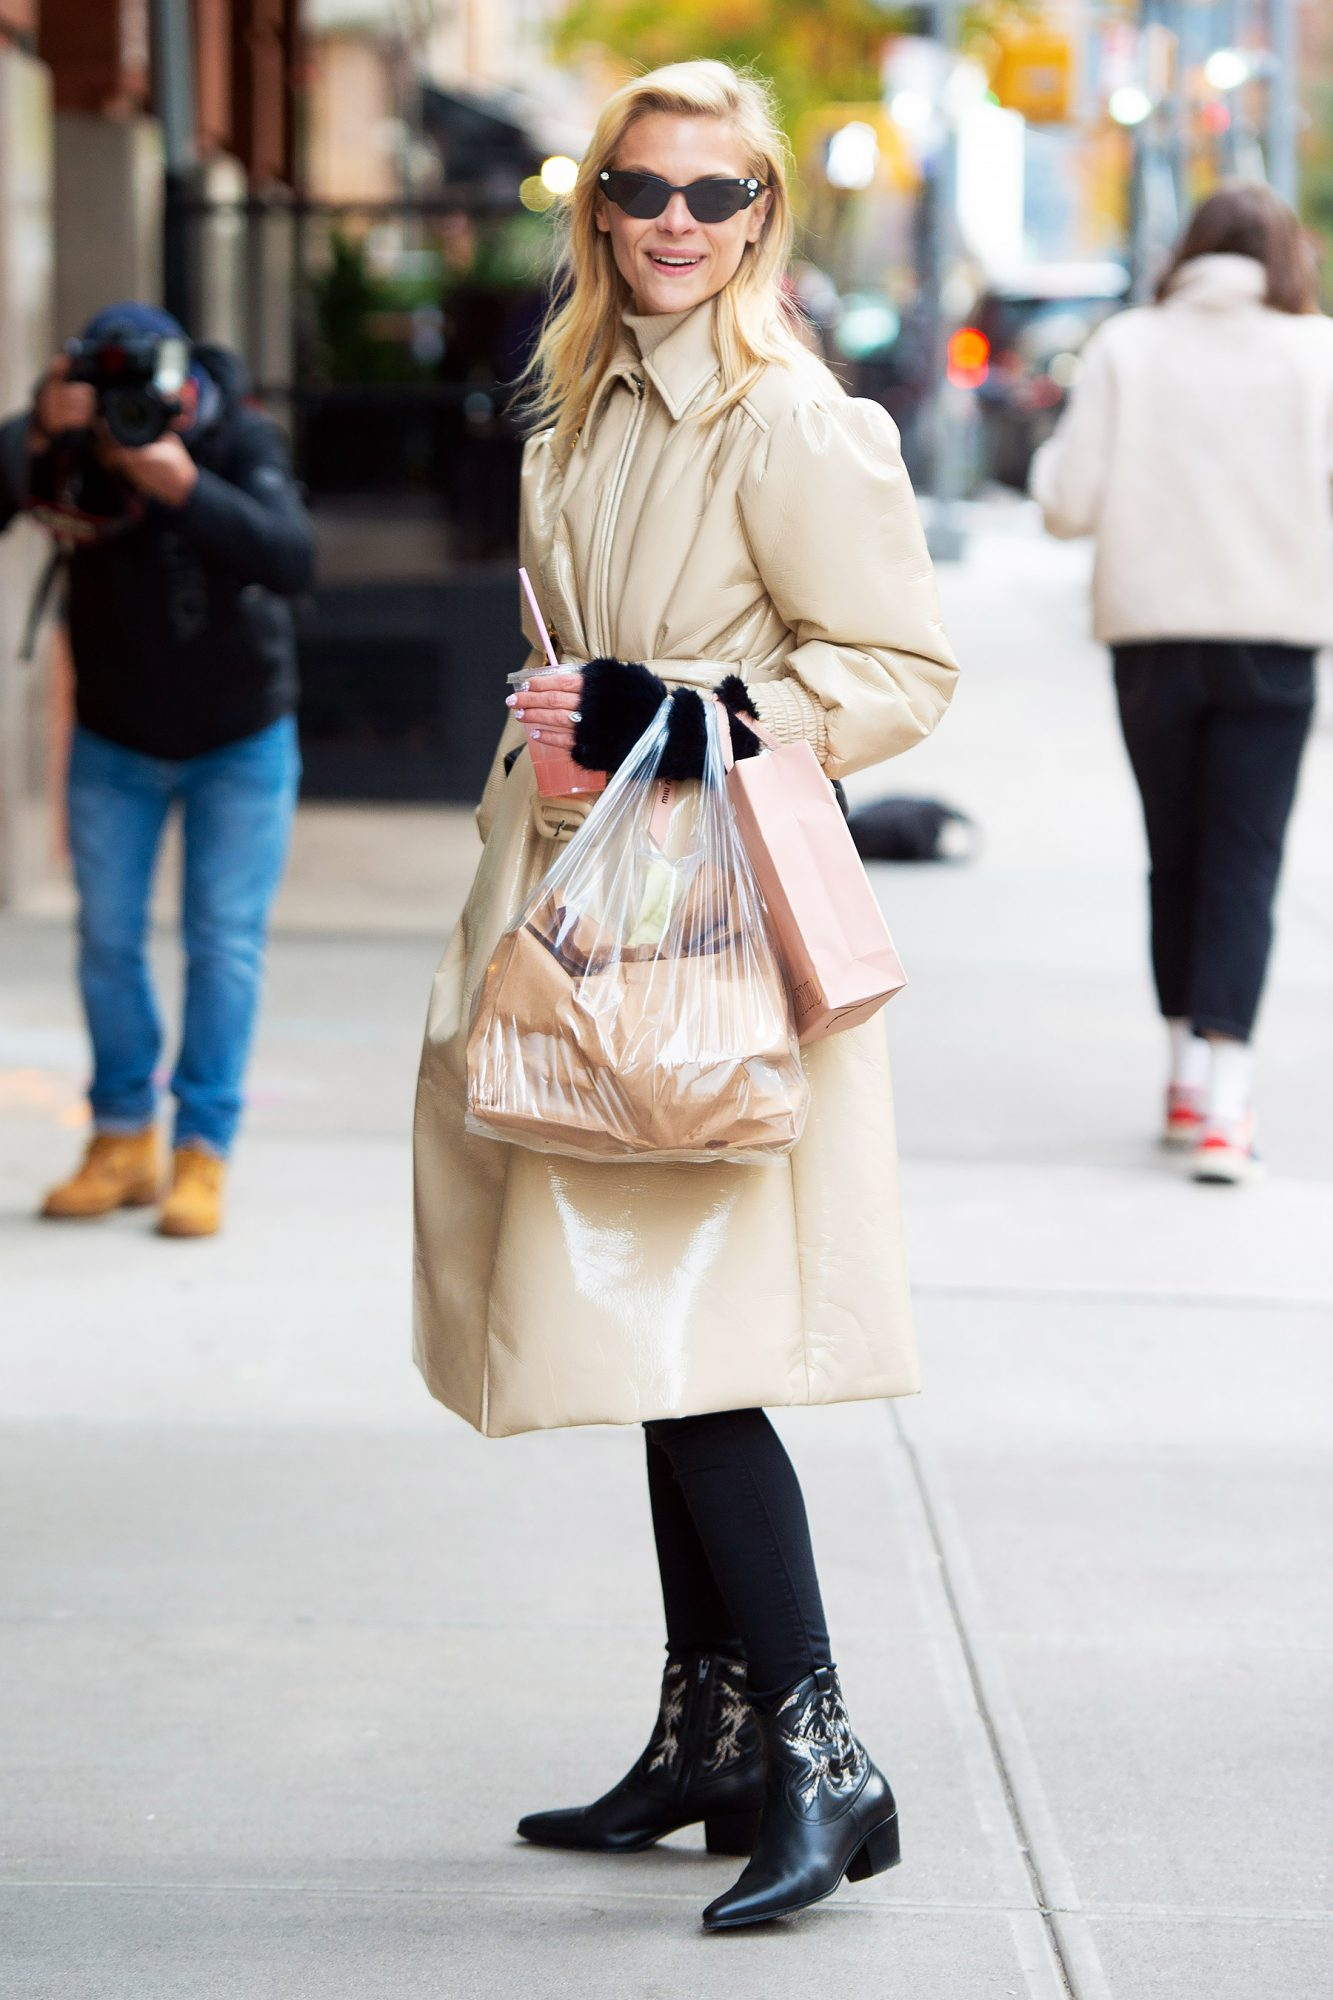 Jaime King arrives at her hotel in NYC.